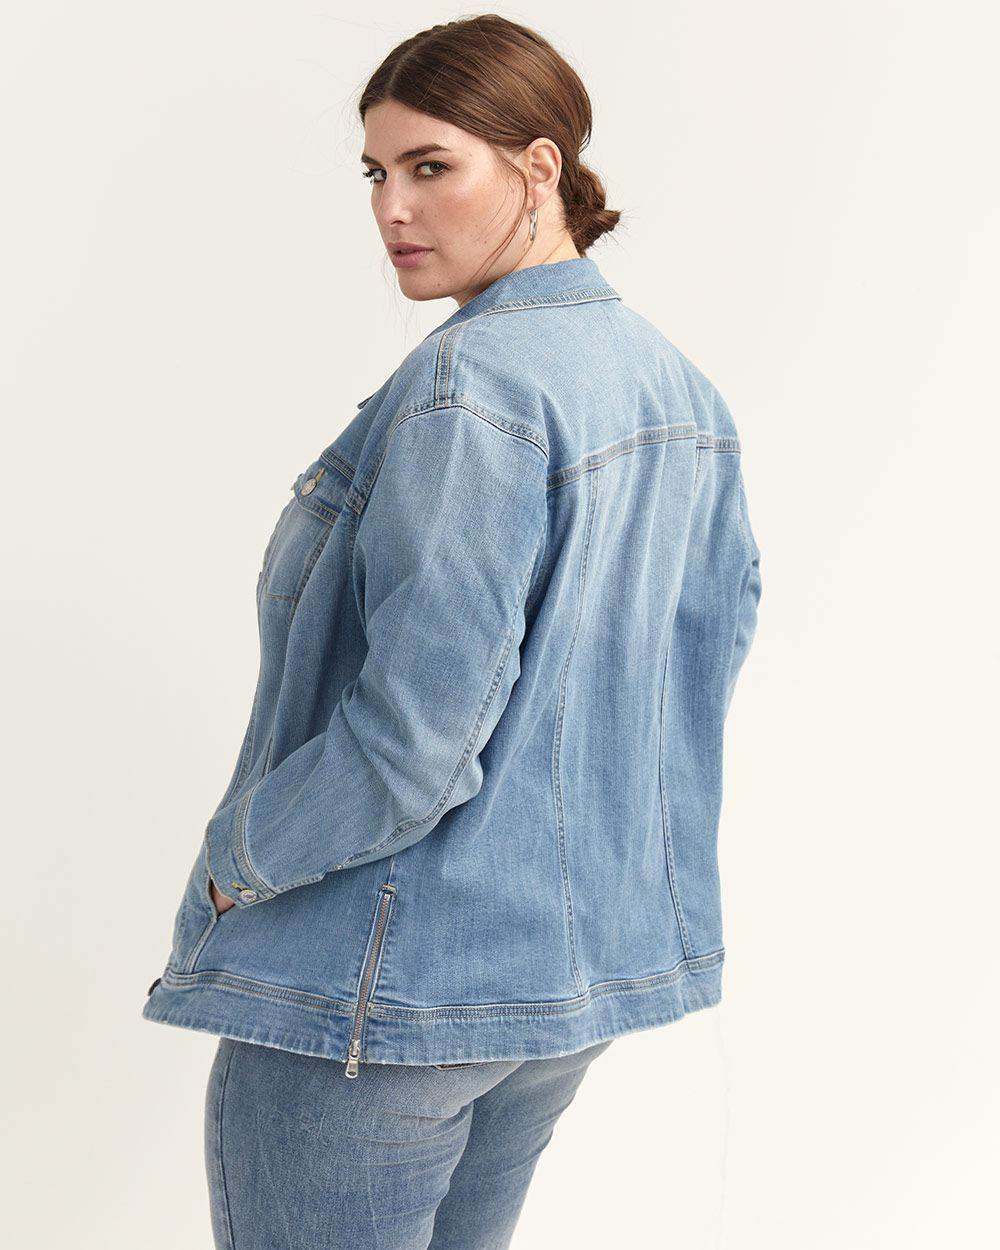 Addition Elle - Denim Jacket ($78 CAD)